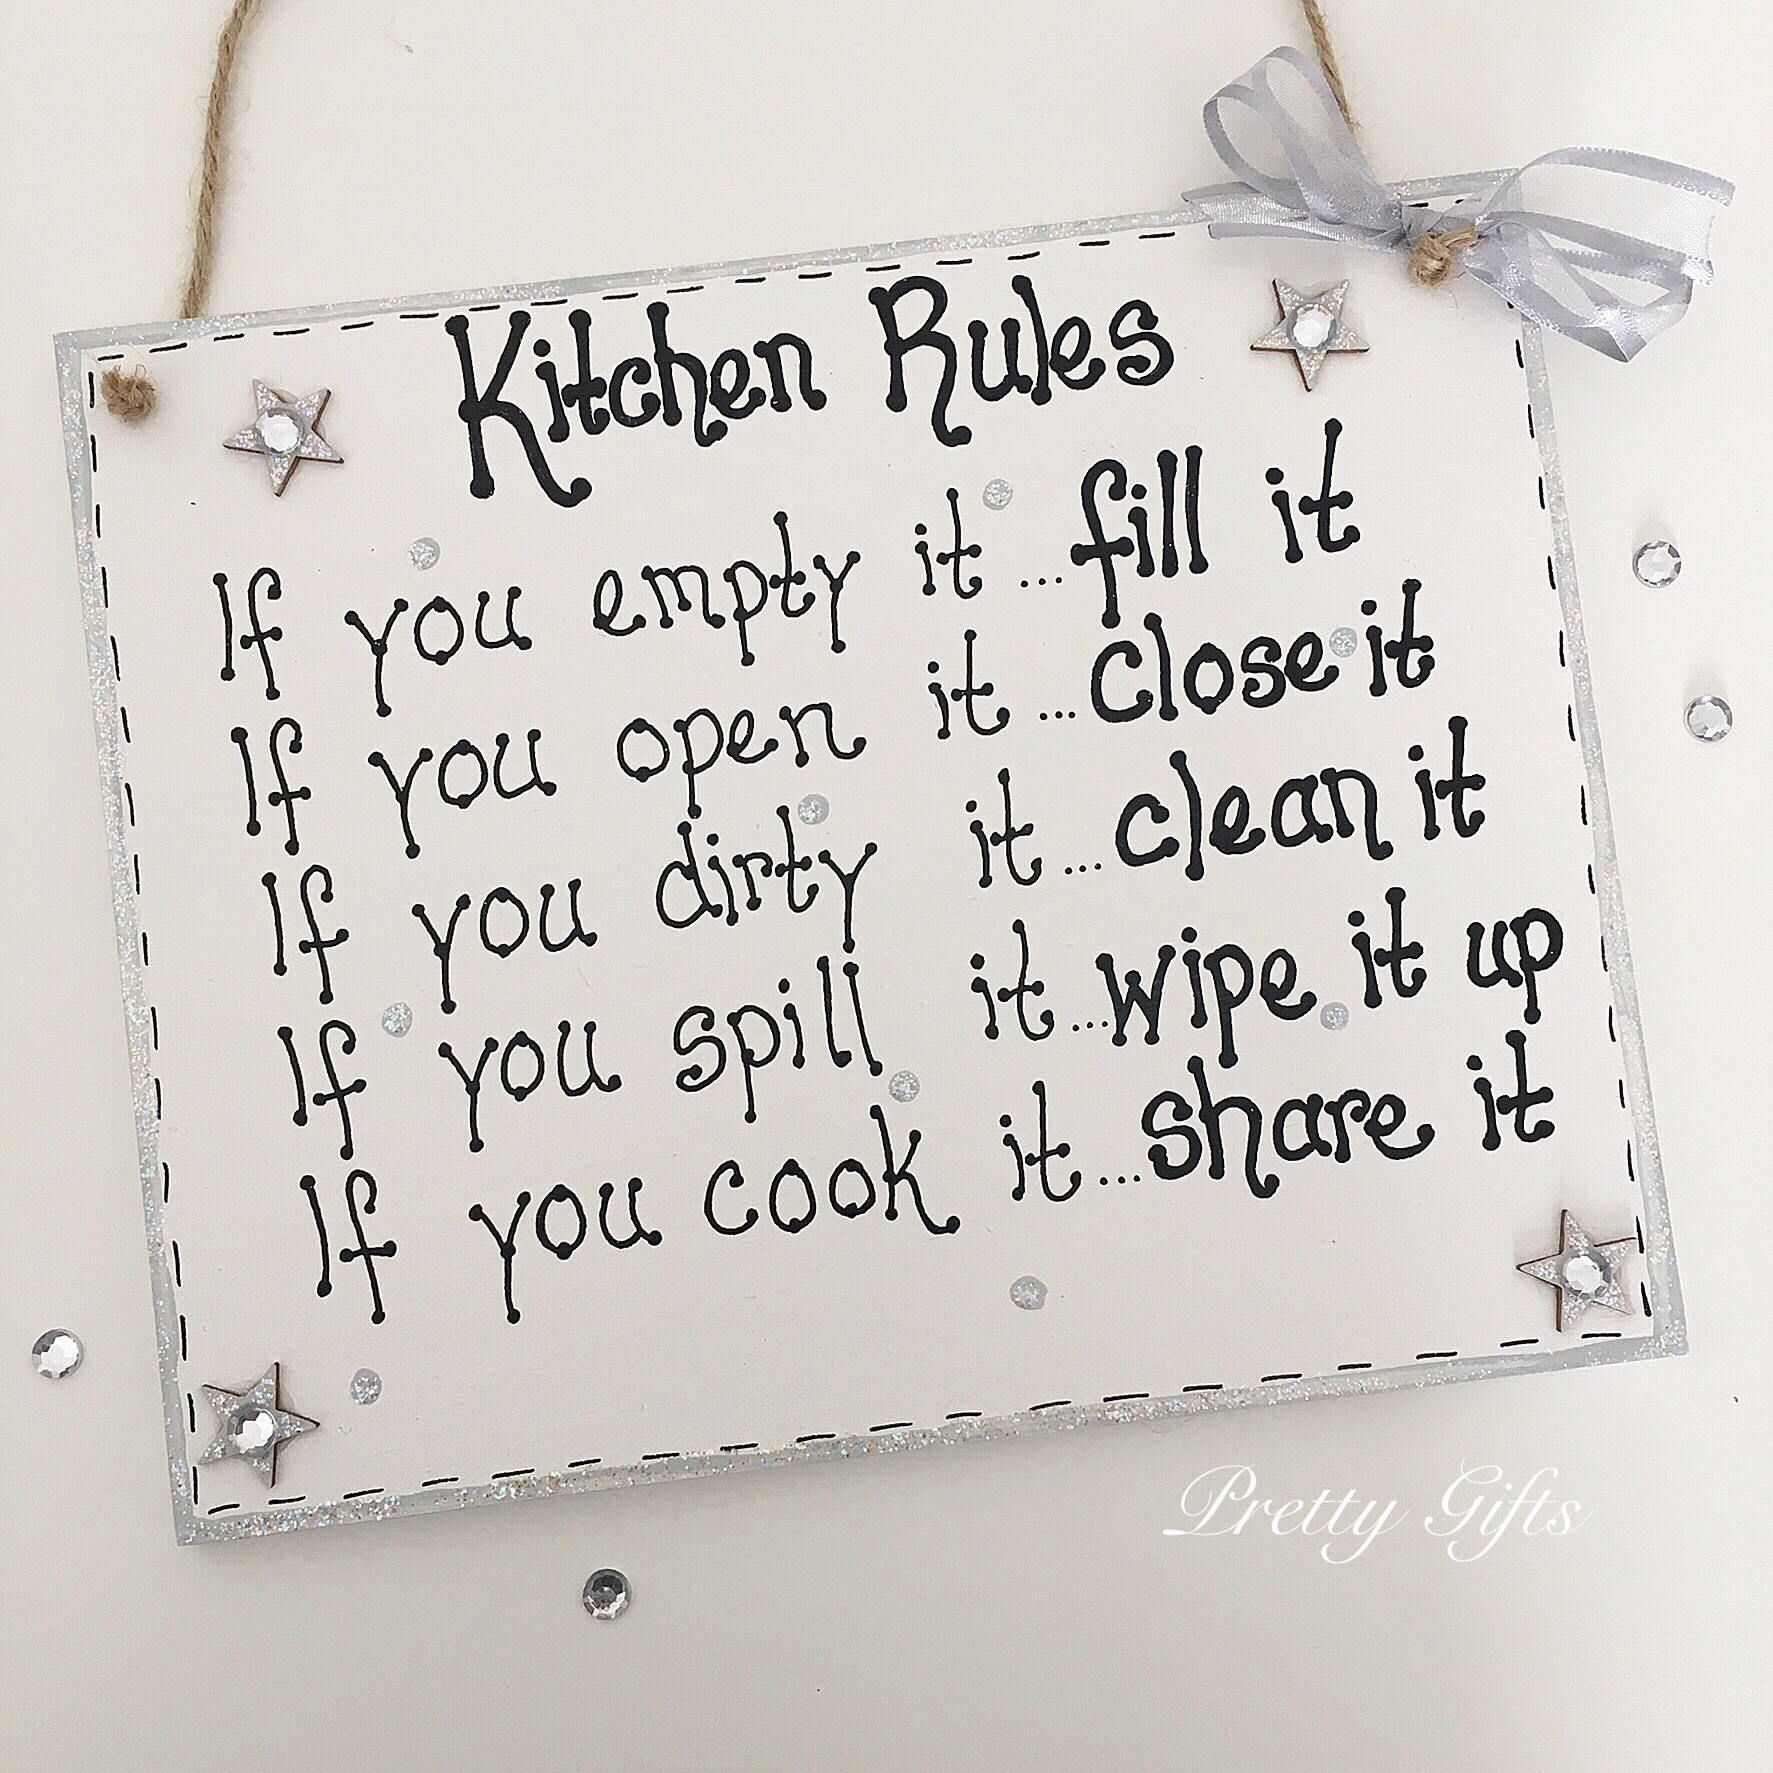 Personalised handmade handwritten kitchen rules plaque new home gift ...